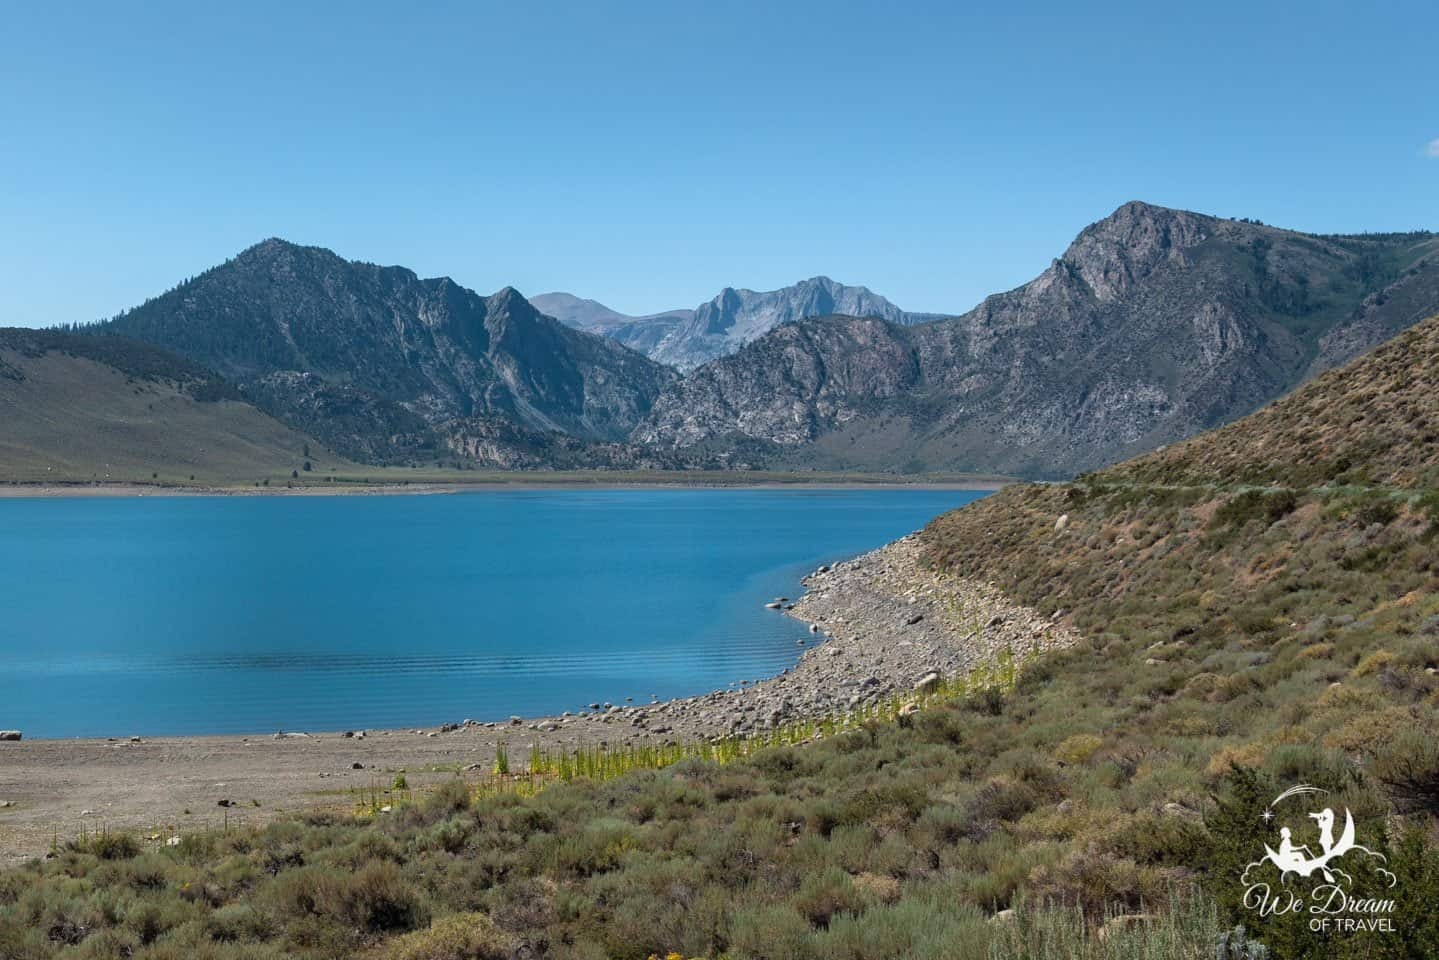 Photography from Grant Lake on the June Lakes Loop scenic drive.